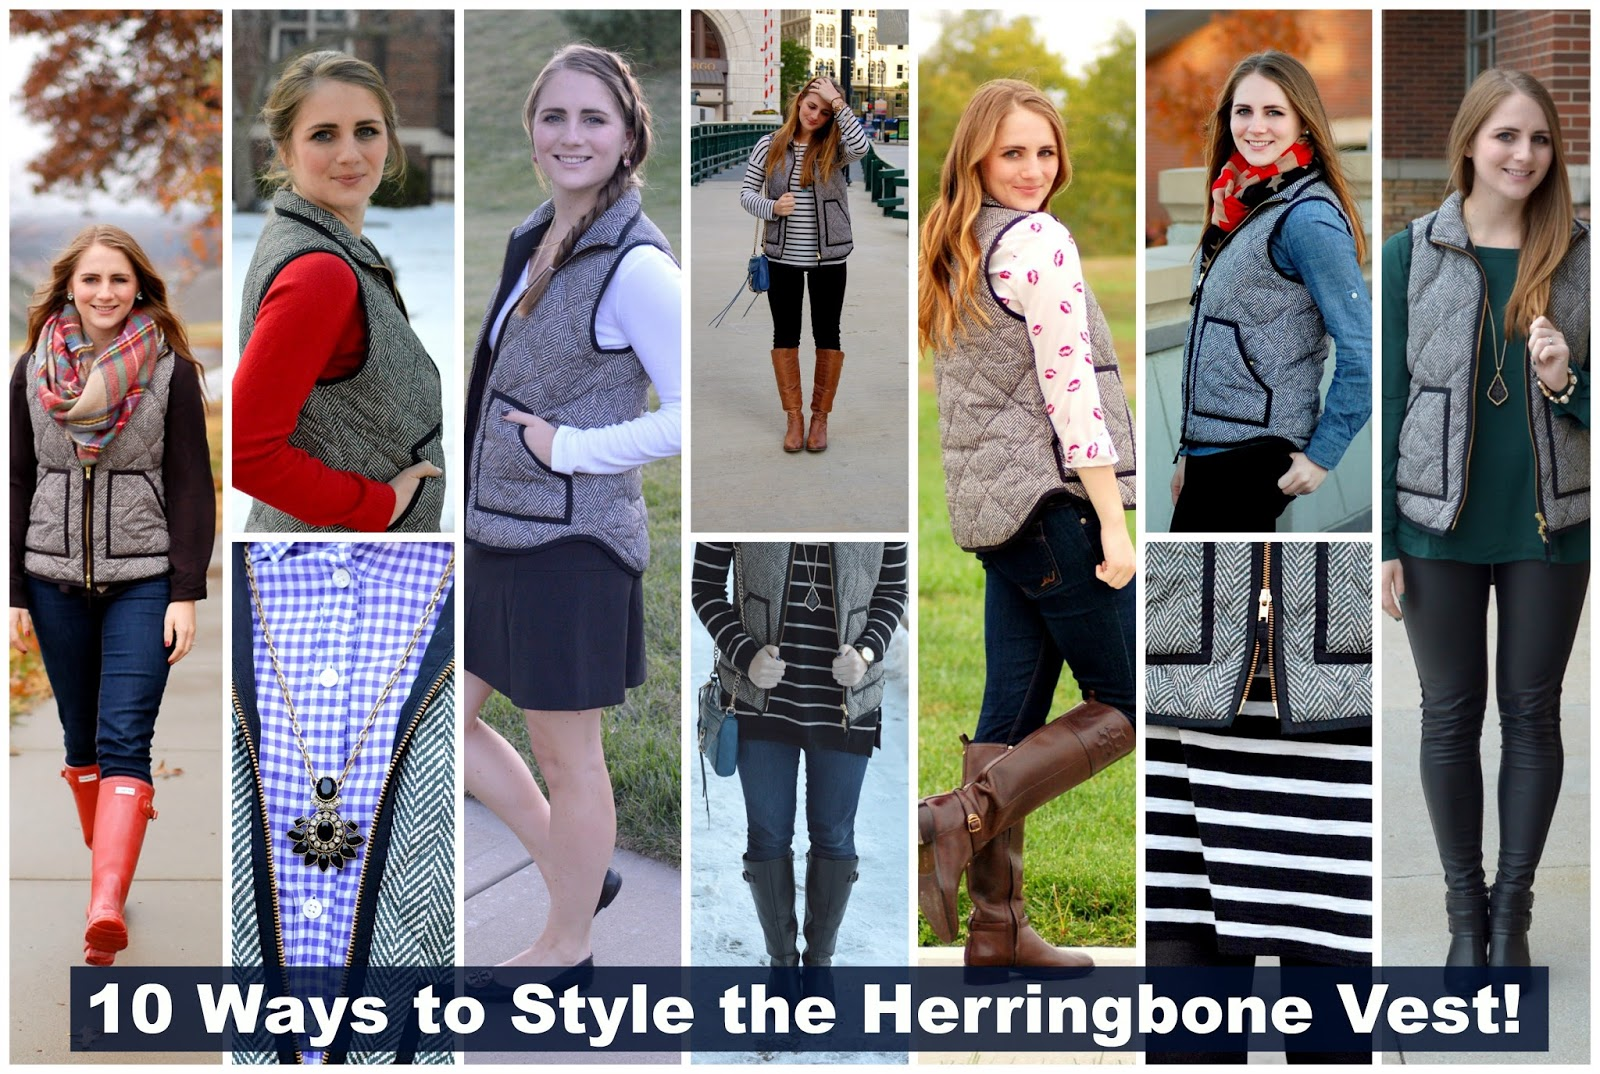 10 ways to style the herringbone vest